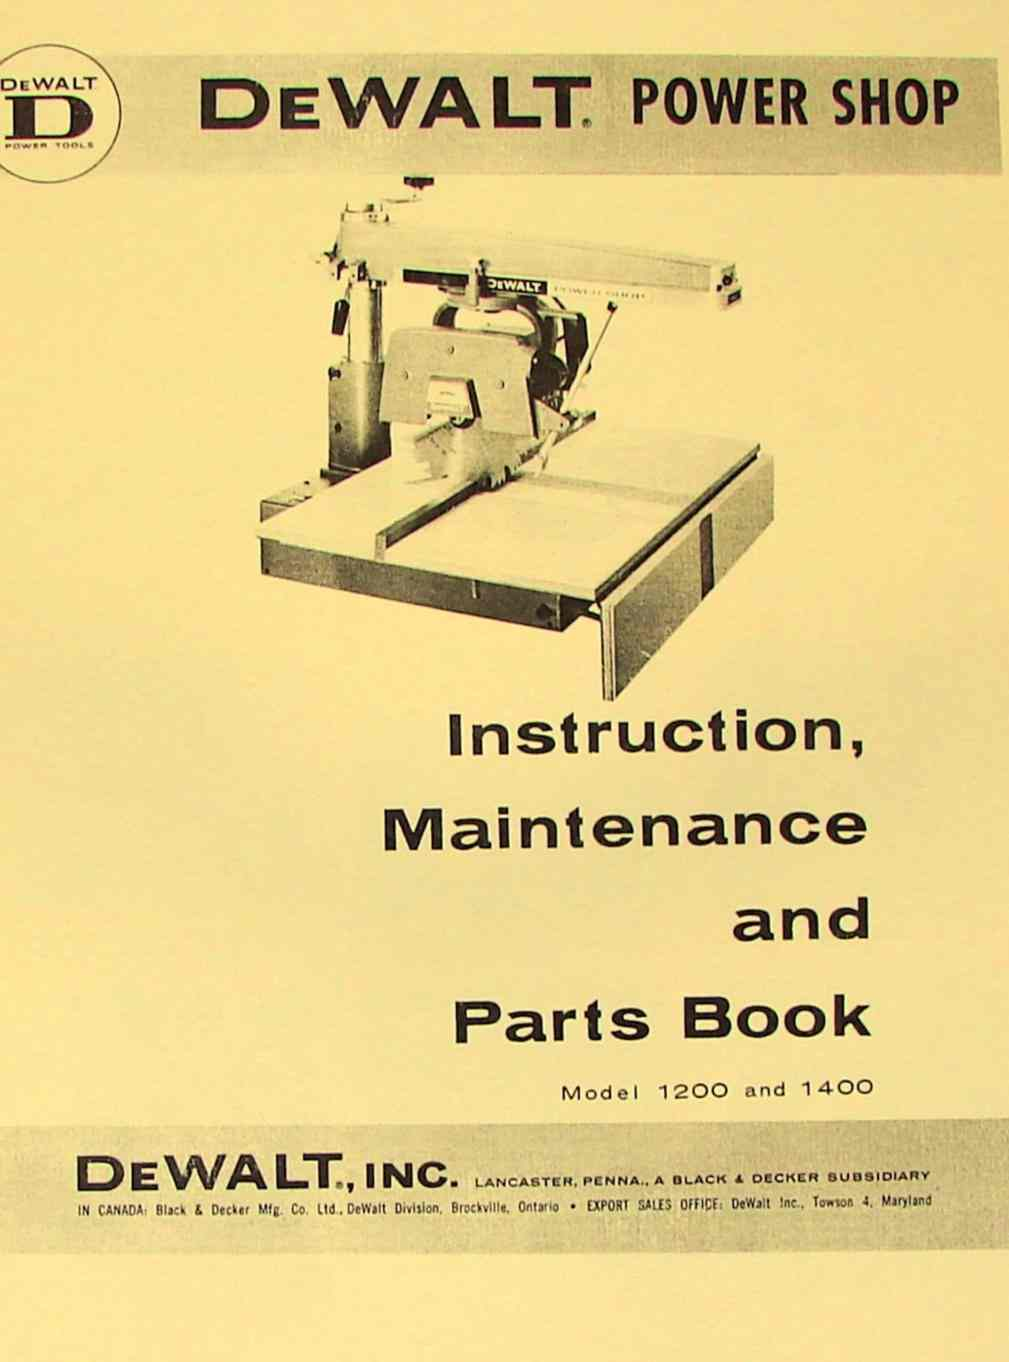 0262 dewalt power shop 1200 & 1400 radial arm saw instructions & parts Delta Professional Radial Arm Saw at webbmarketing.co